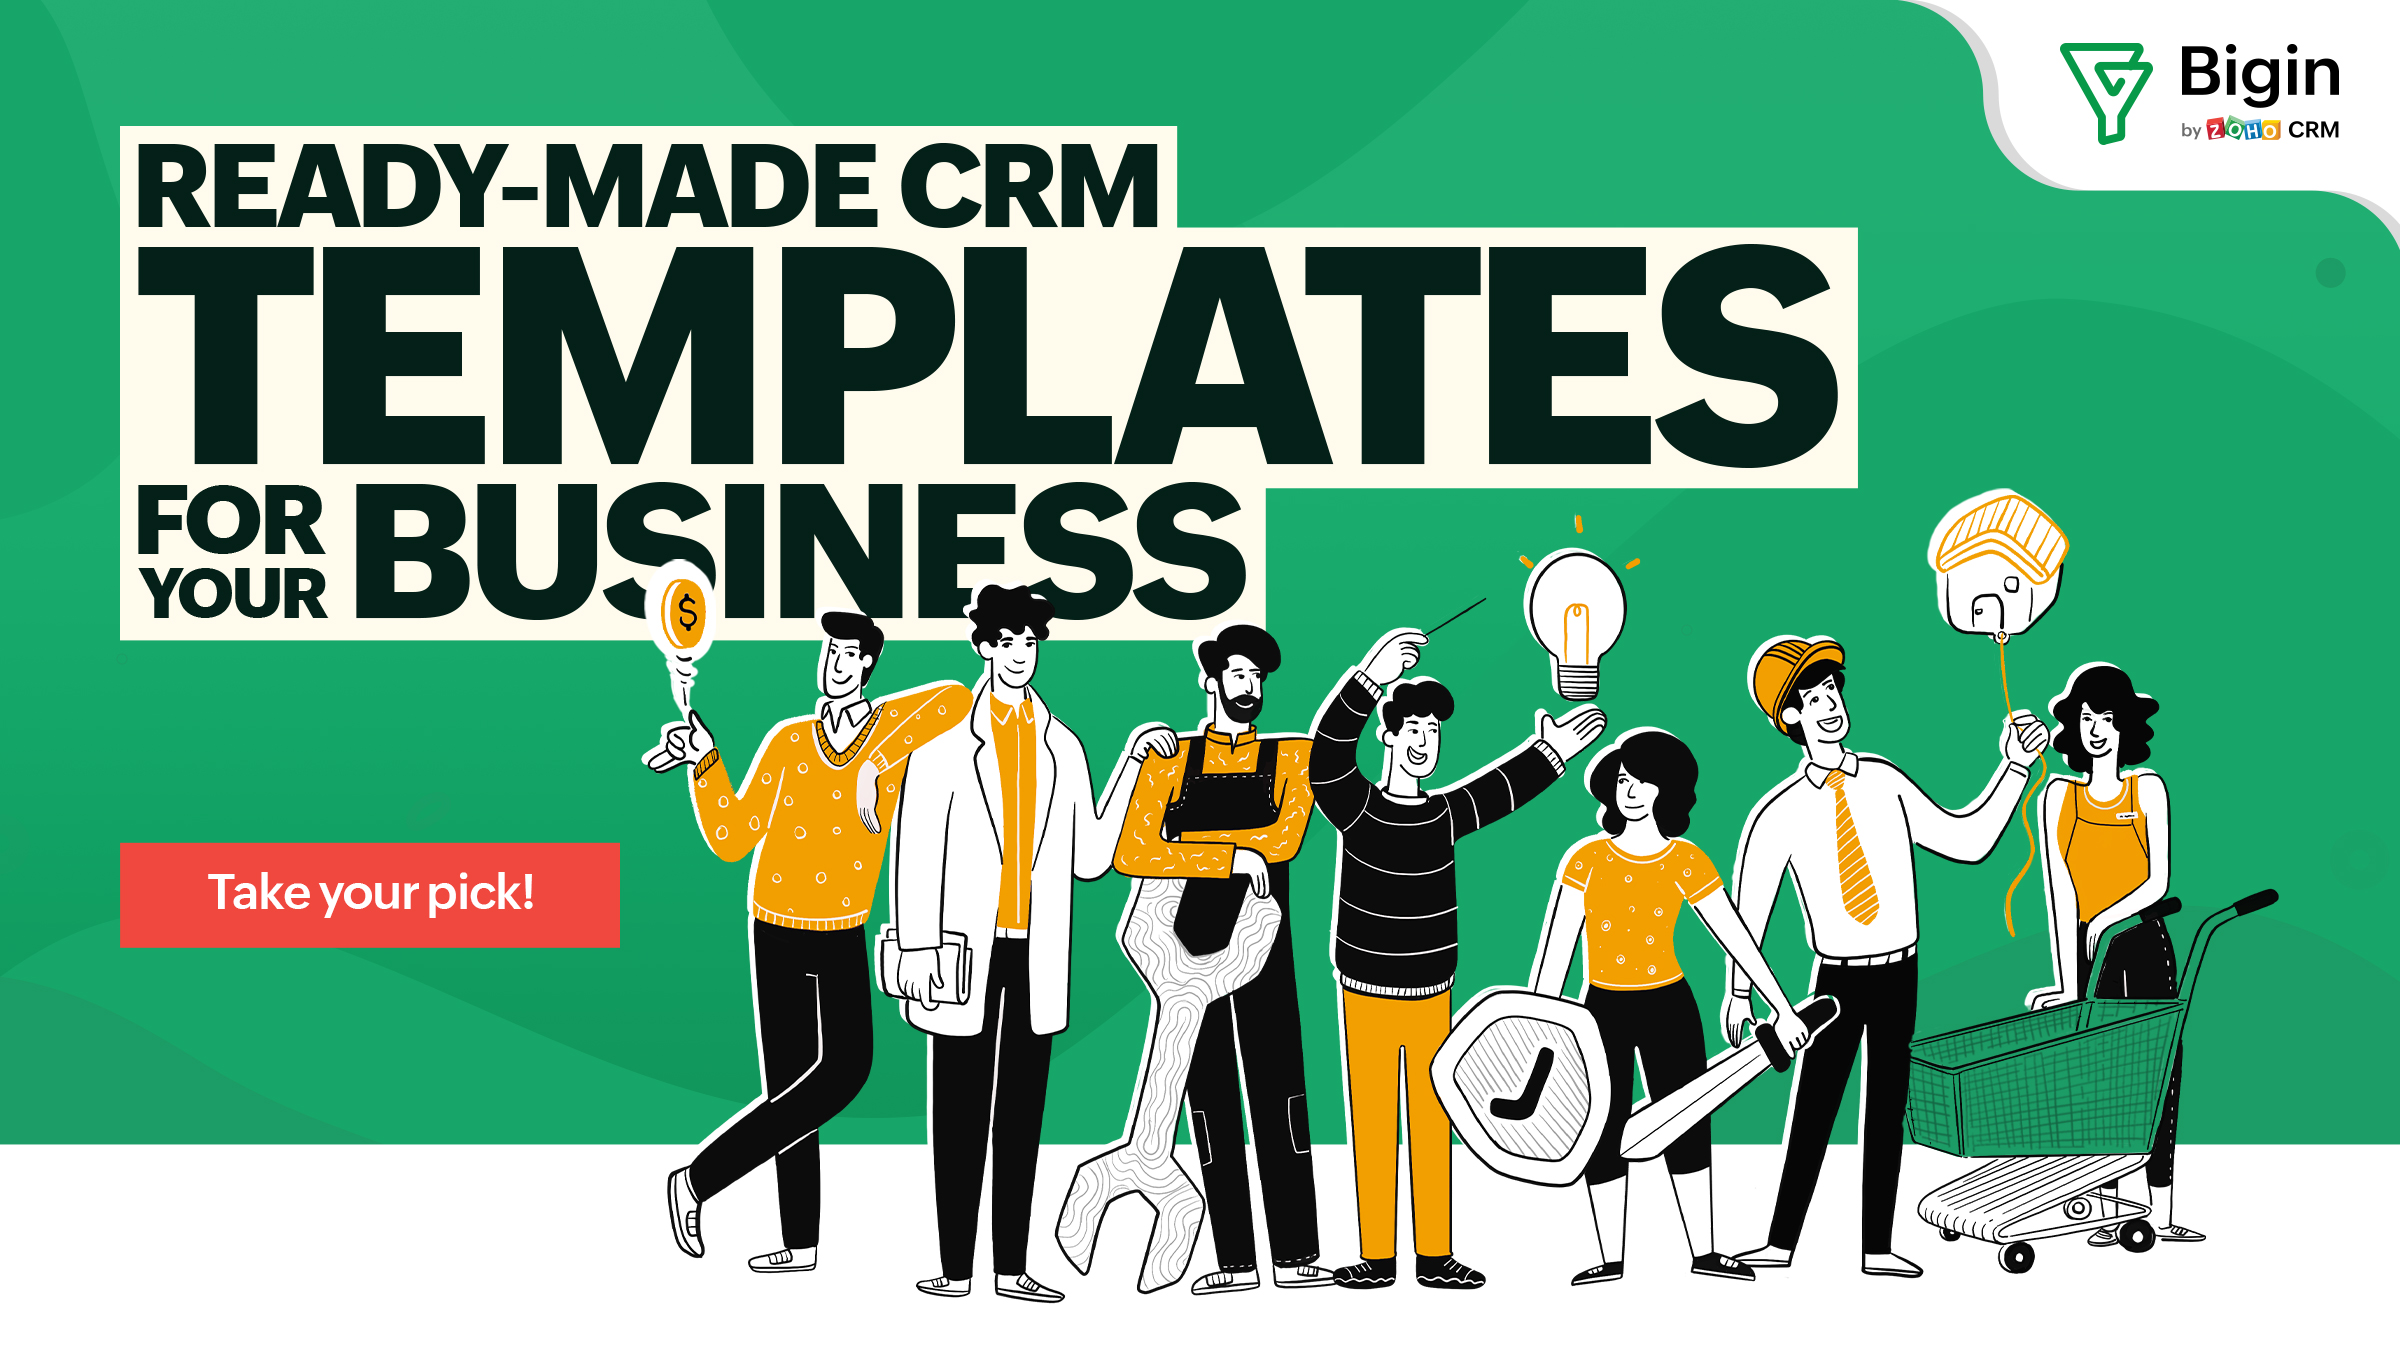 Pick a ready-made CRM template for your business with Bigin. Forget long, complex CRM setups!